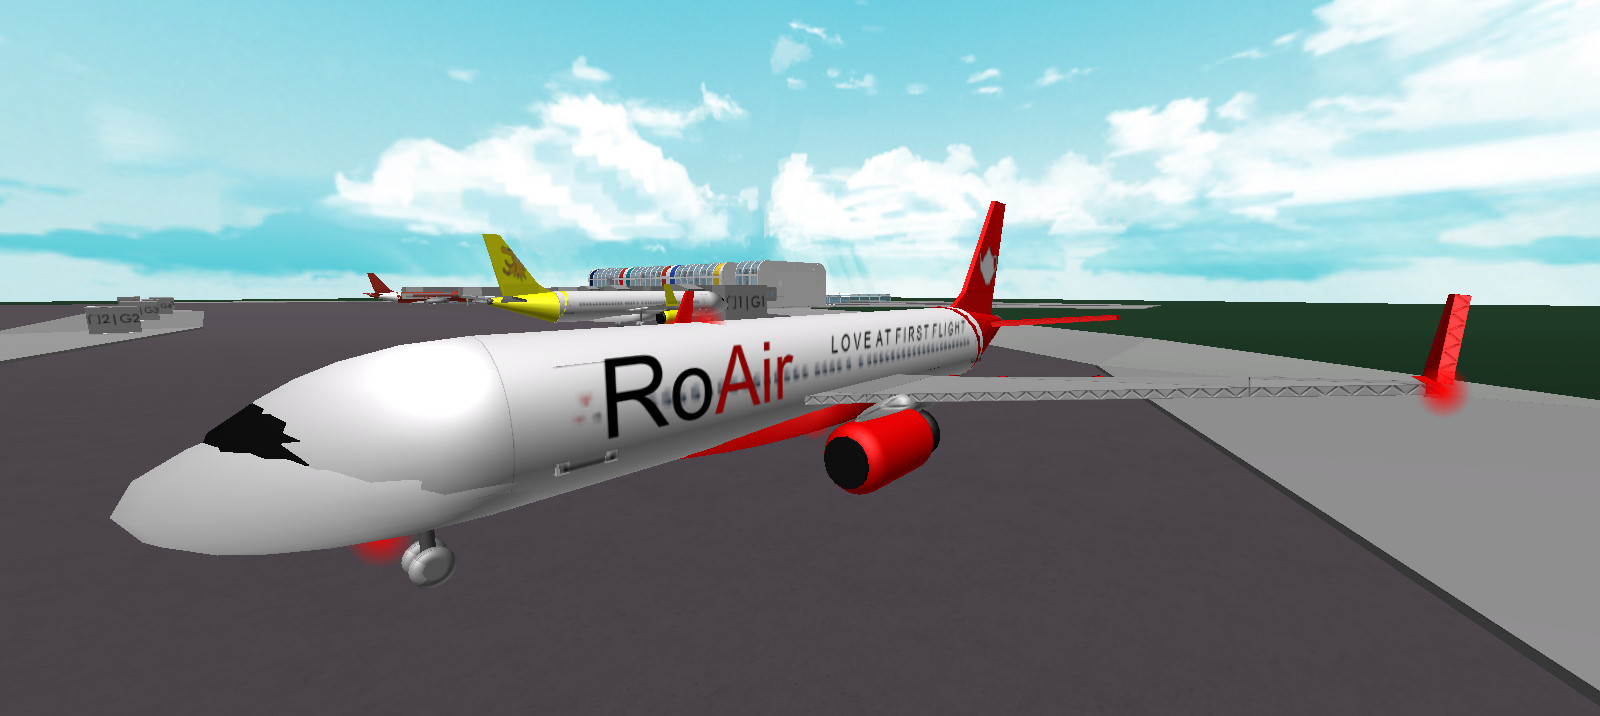 Roair The Roblox Airline Industry Wiki Fandom Powered By - roblox airlines